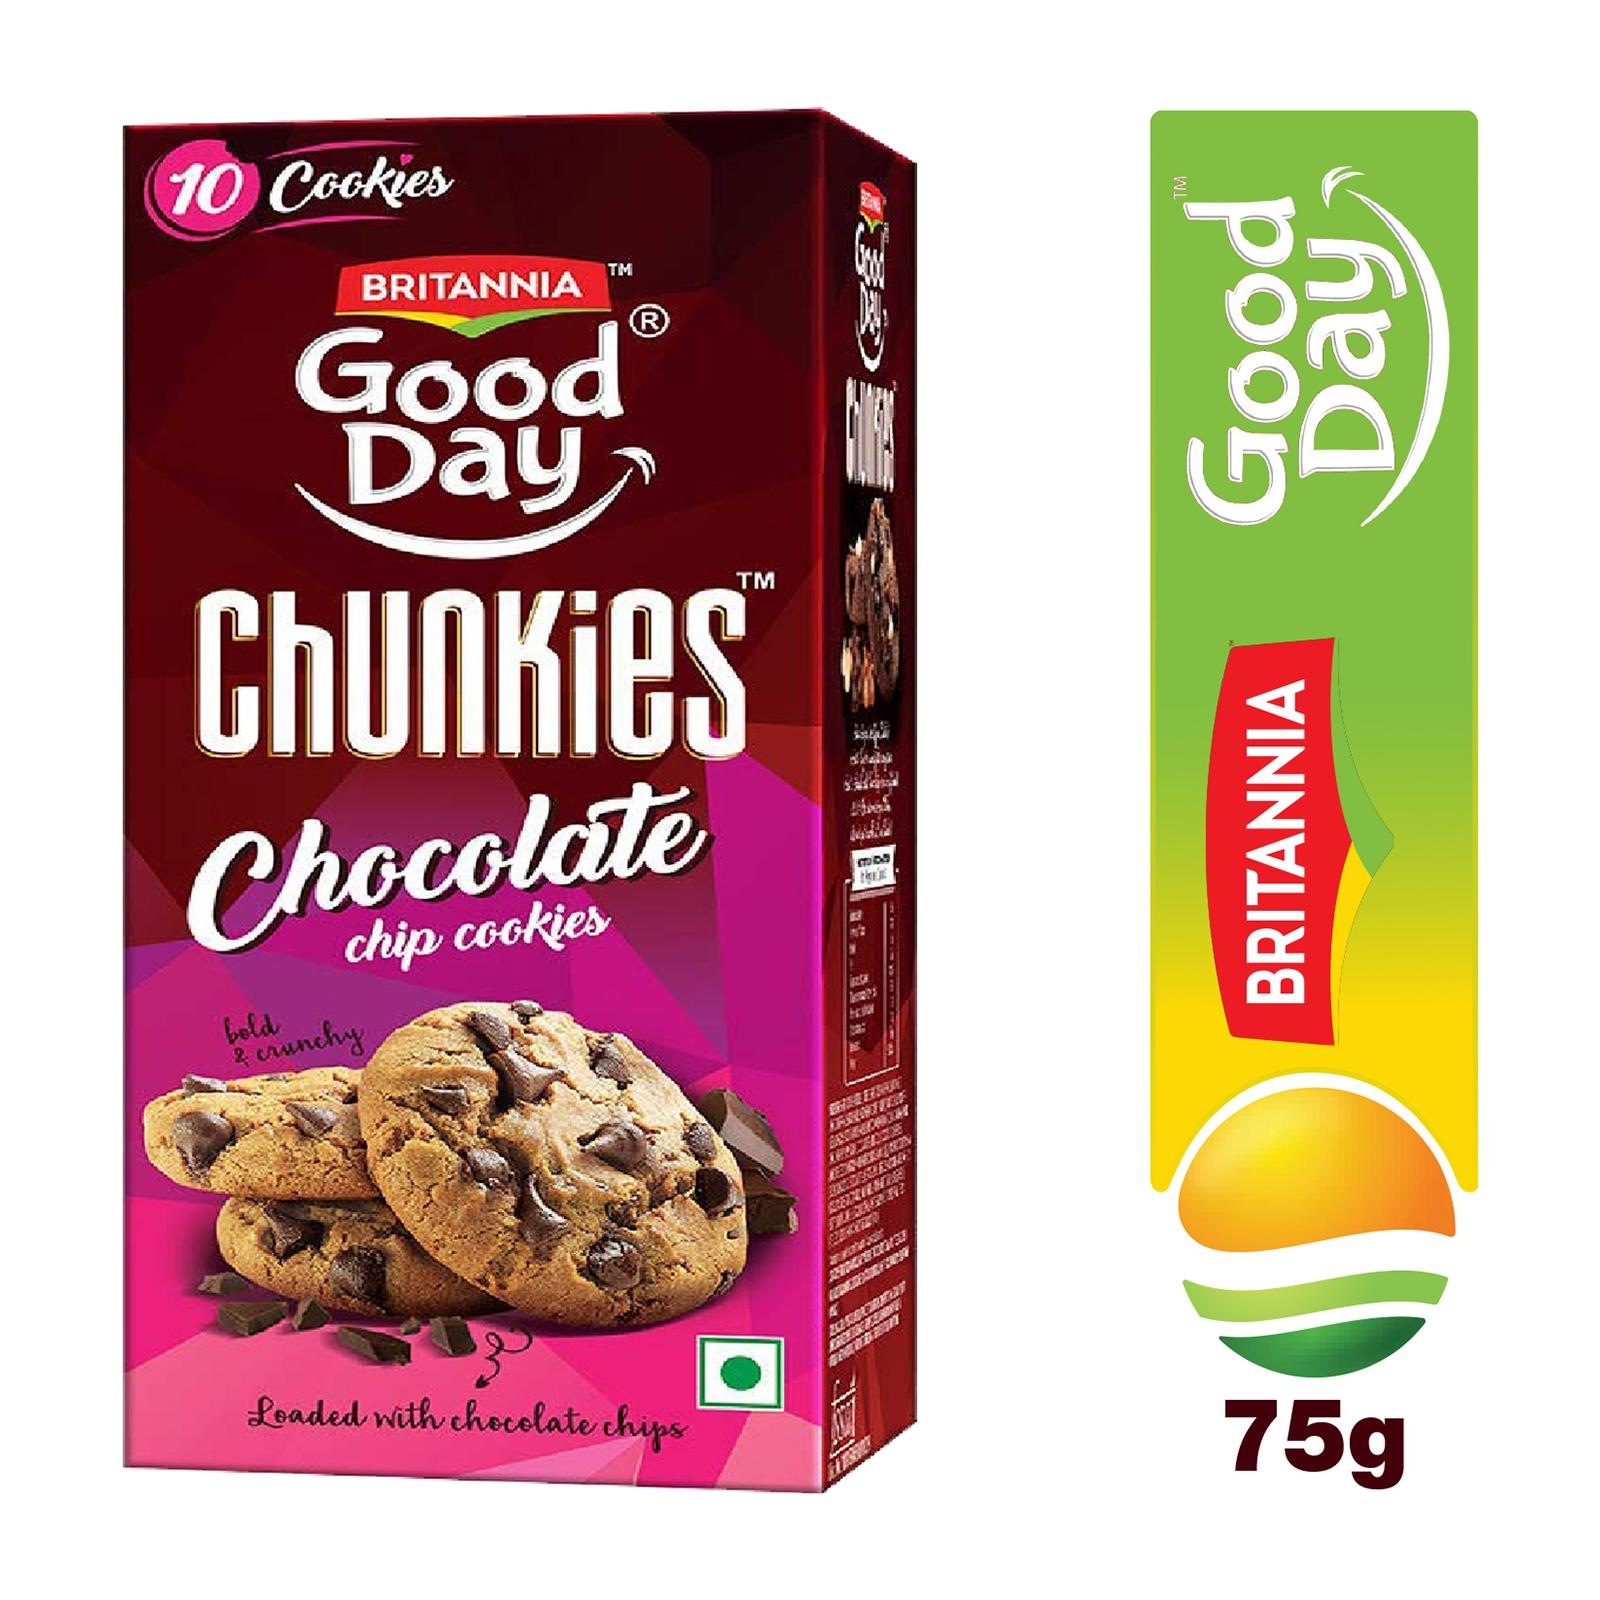 Britannia Good Day Chunkies Chocolate Chip Cookies - By Sonnamera